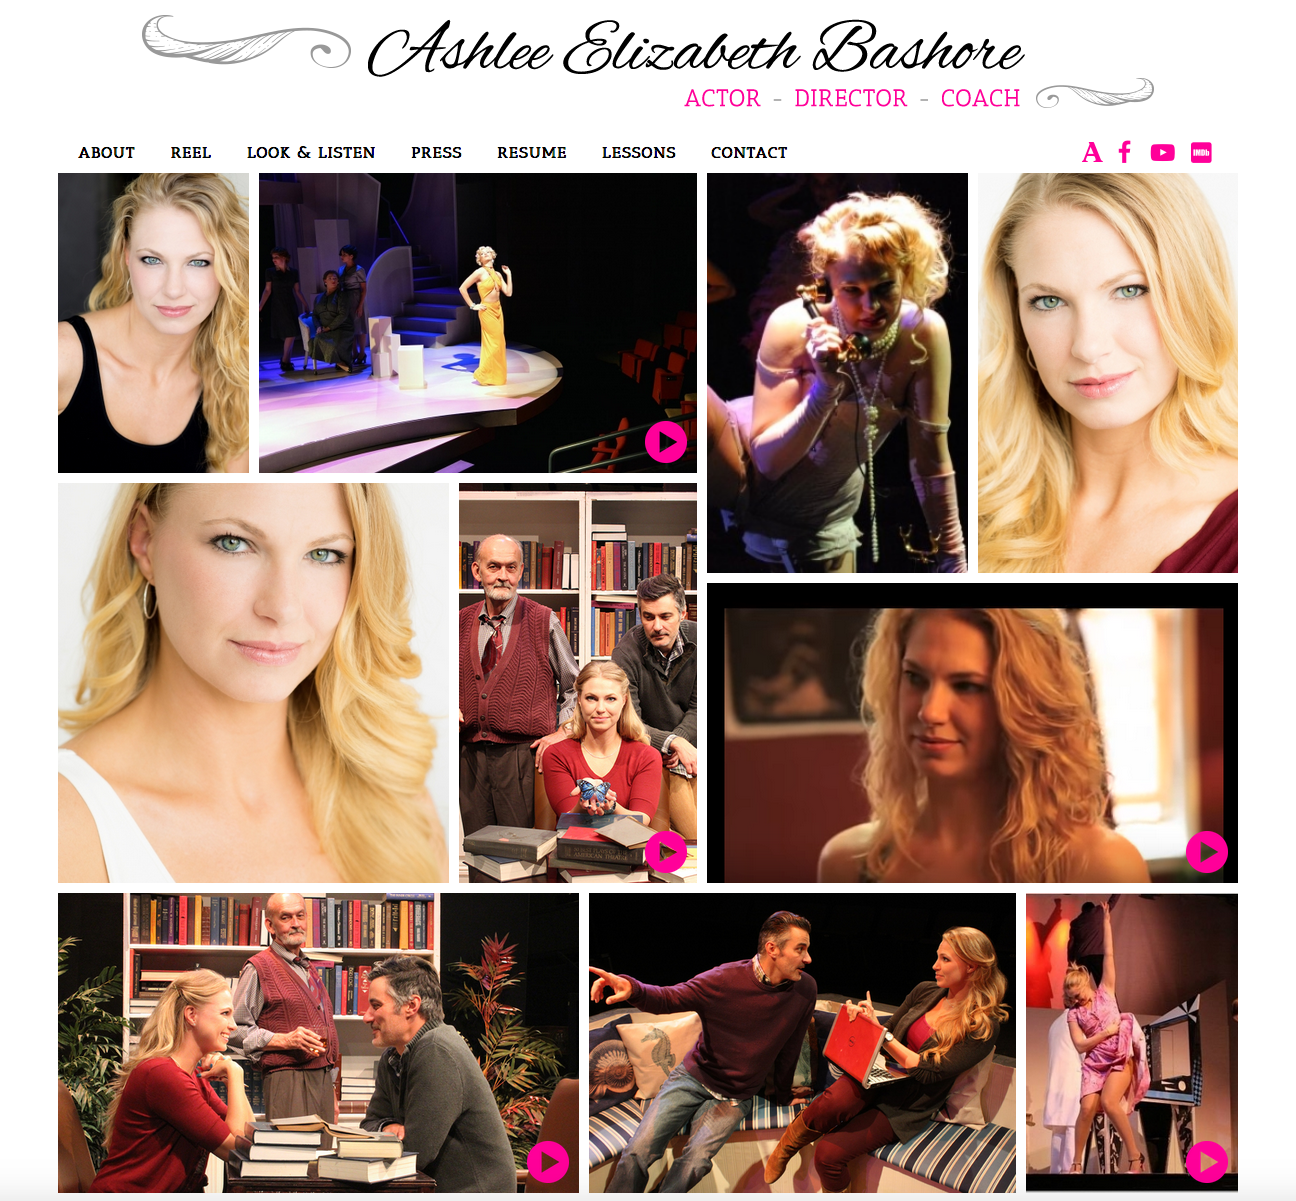 lizz bashore actress website design